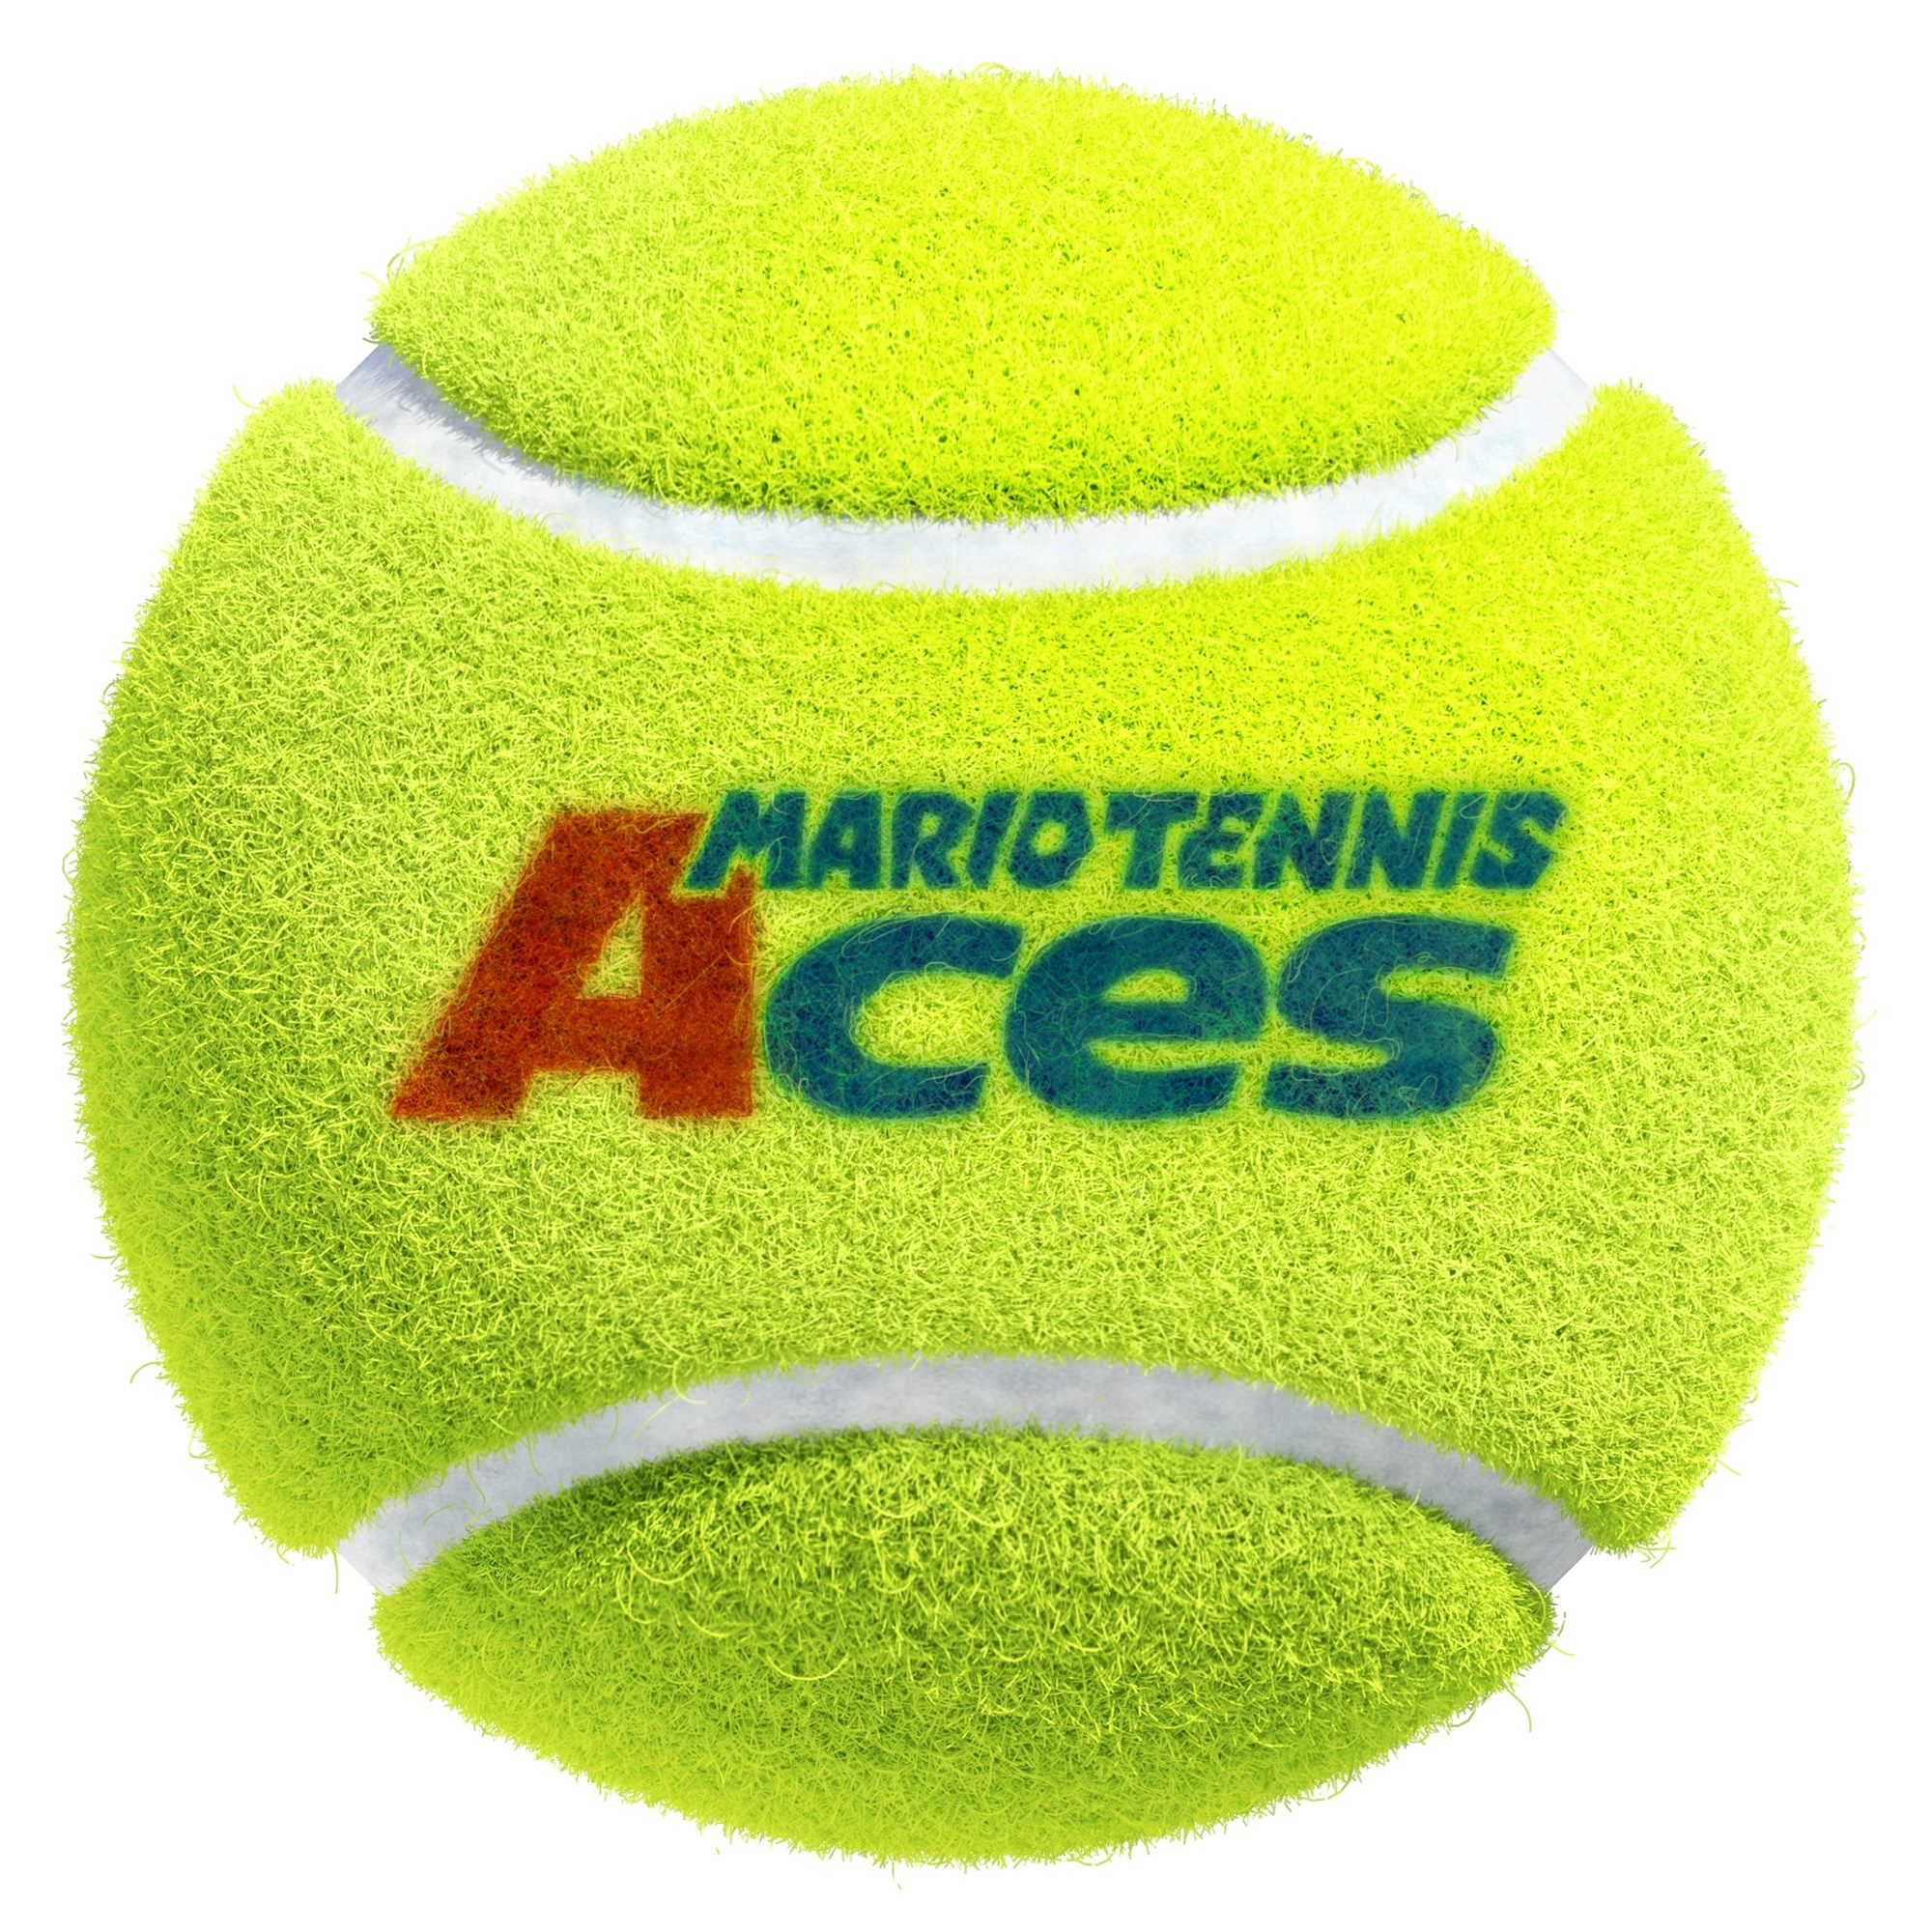 Matchmaking mario tennis aces